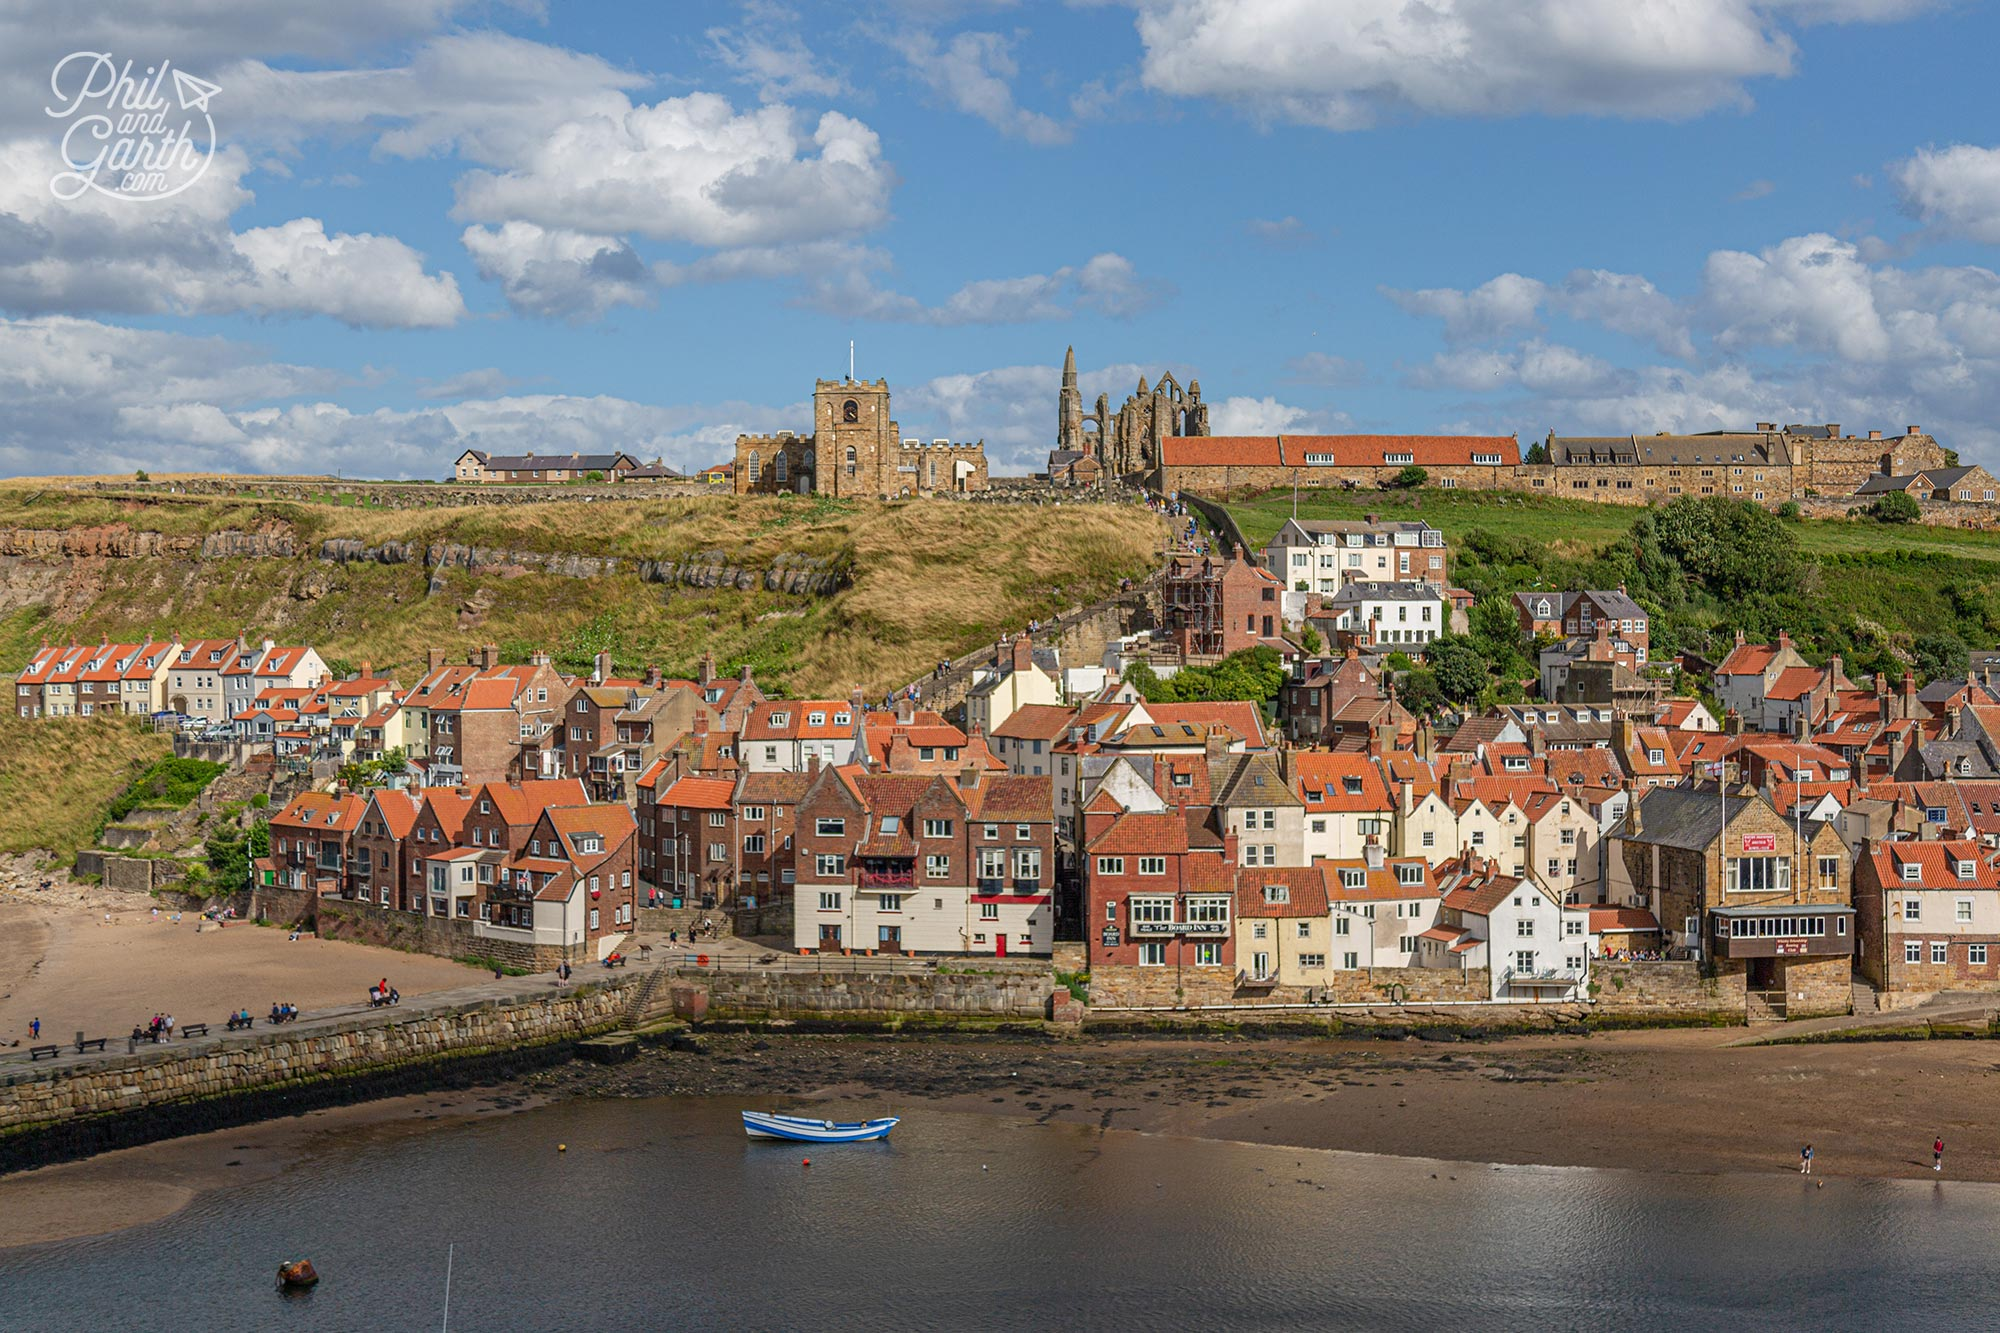 The view from the spot in Whitby that inspired Bram Stoker to use Whitby as the setting for Dracula